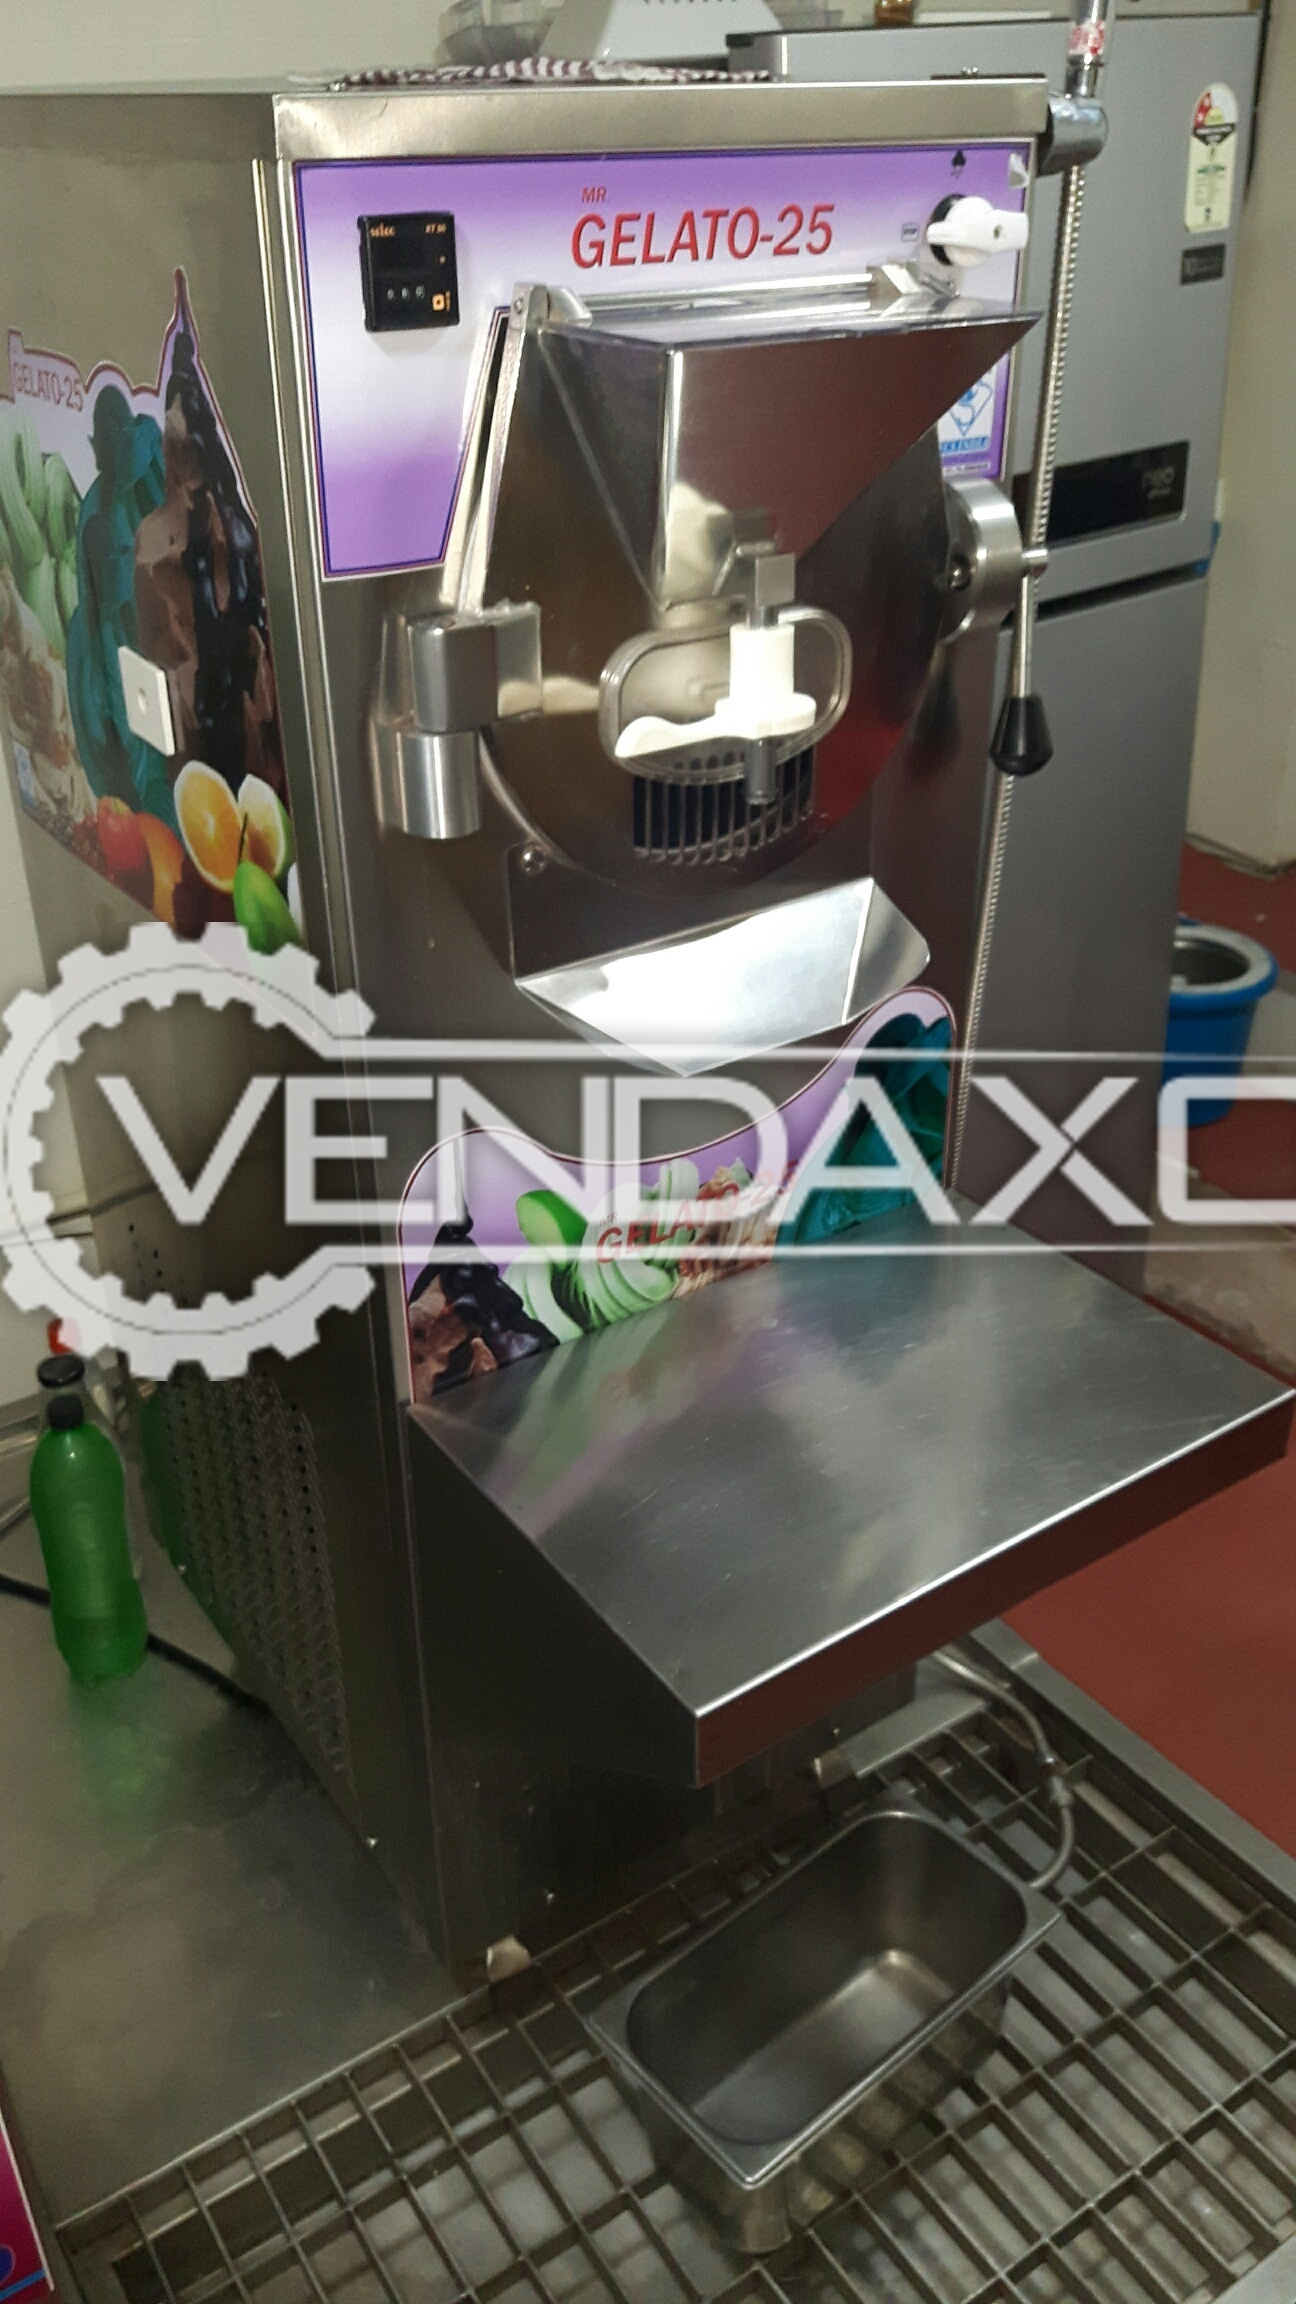 YES VCS Make MR Gelato 25 ARTISAN ITALIAN Processed Food Machinery - Width - 600 mm